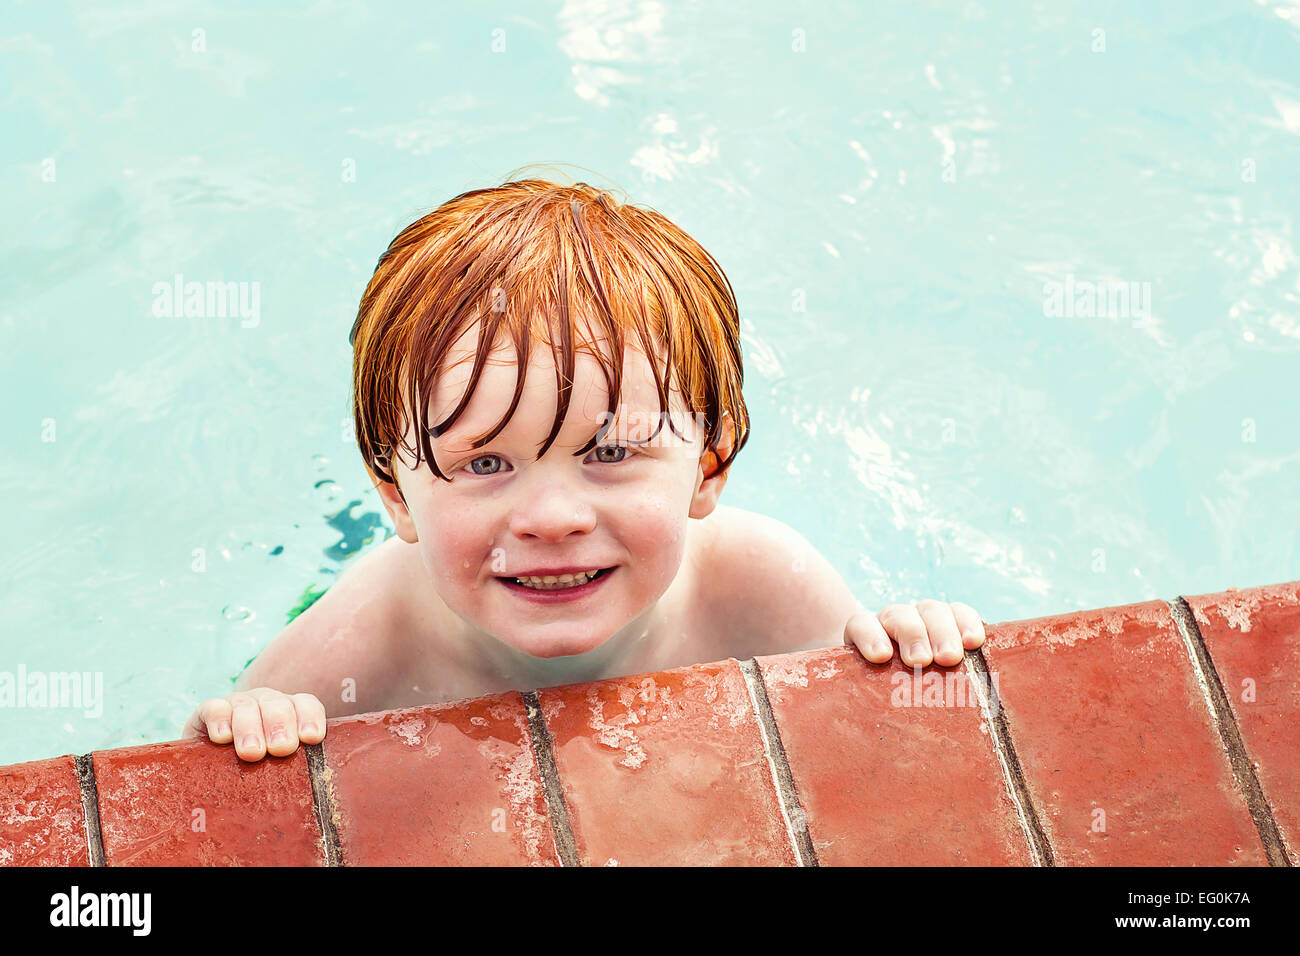 Portrait of smiling boy in a swimming pool - Stock Image